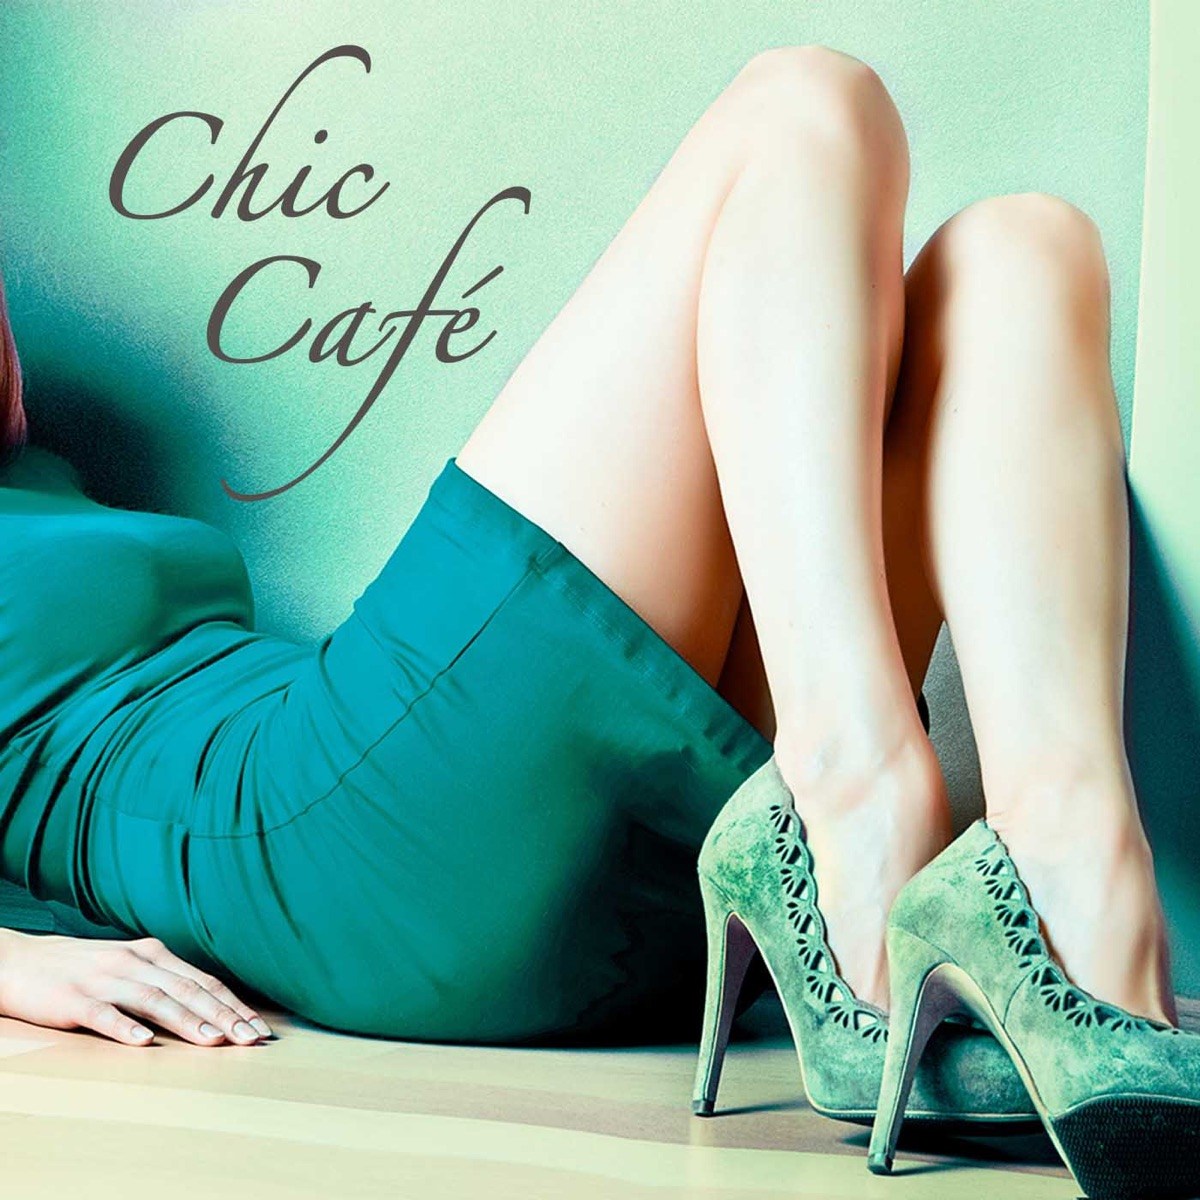 Chic Café: Best Lounge Chill Out Music Playlist Album Cover by